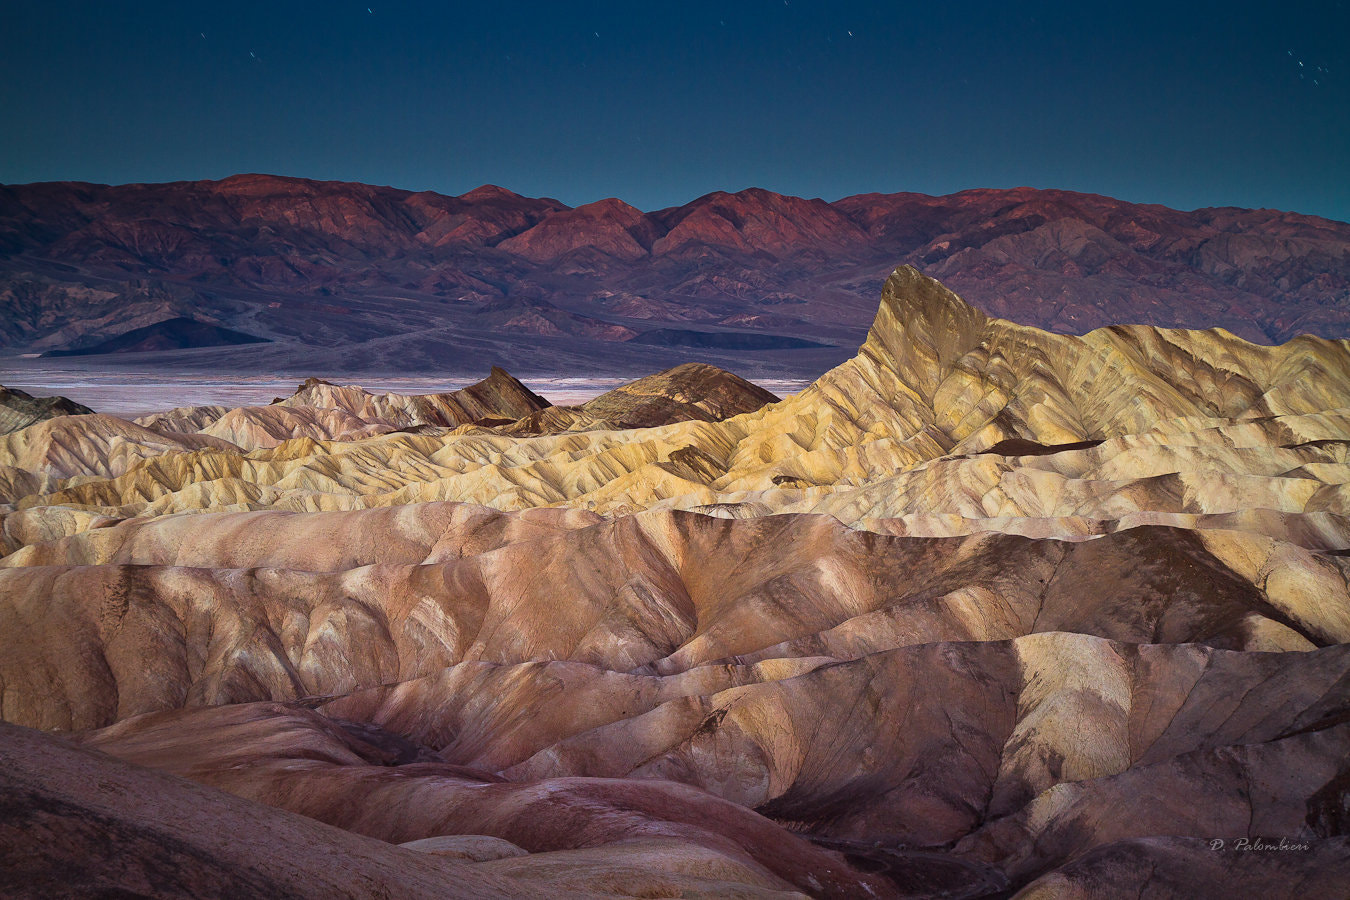 Photograph Zabriskie Point just before sunrise, Death Valley National Park, California by Dominique  Palombieri on 500px